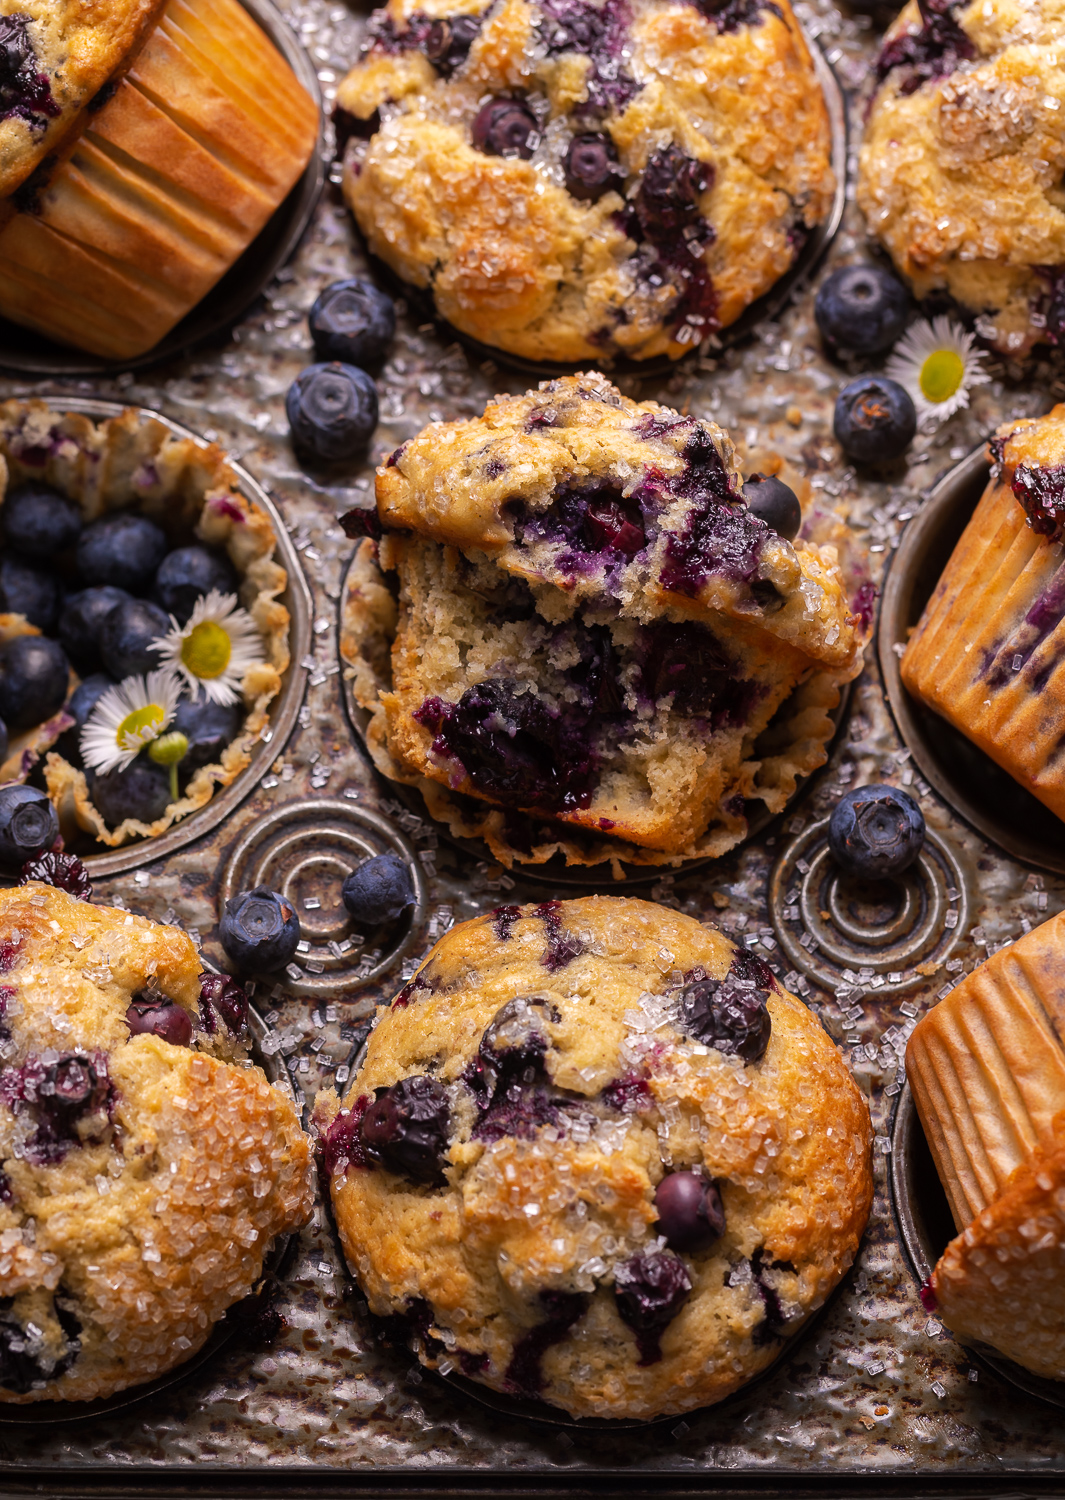 Not too sweet and delightfully moist, these Banana Blueberry Muffins are the perfect breakfast treat! Fresh blueberries work best, but frozen blueberries will work in a pinch. Be sure to fill the muffin cups all the way up to the top for giant domed muffin tops!